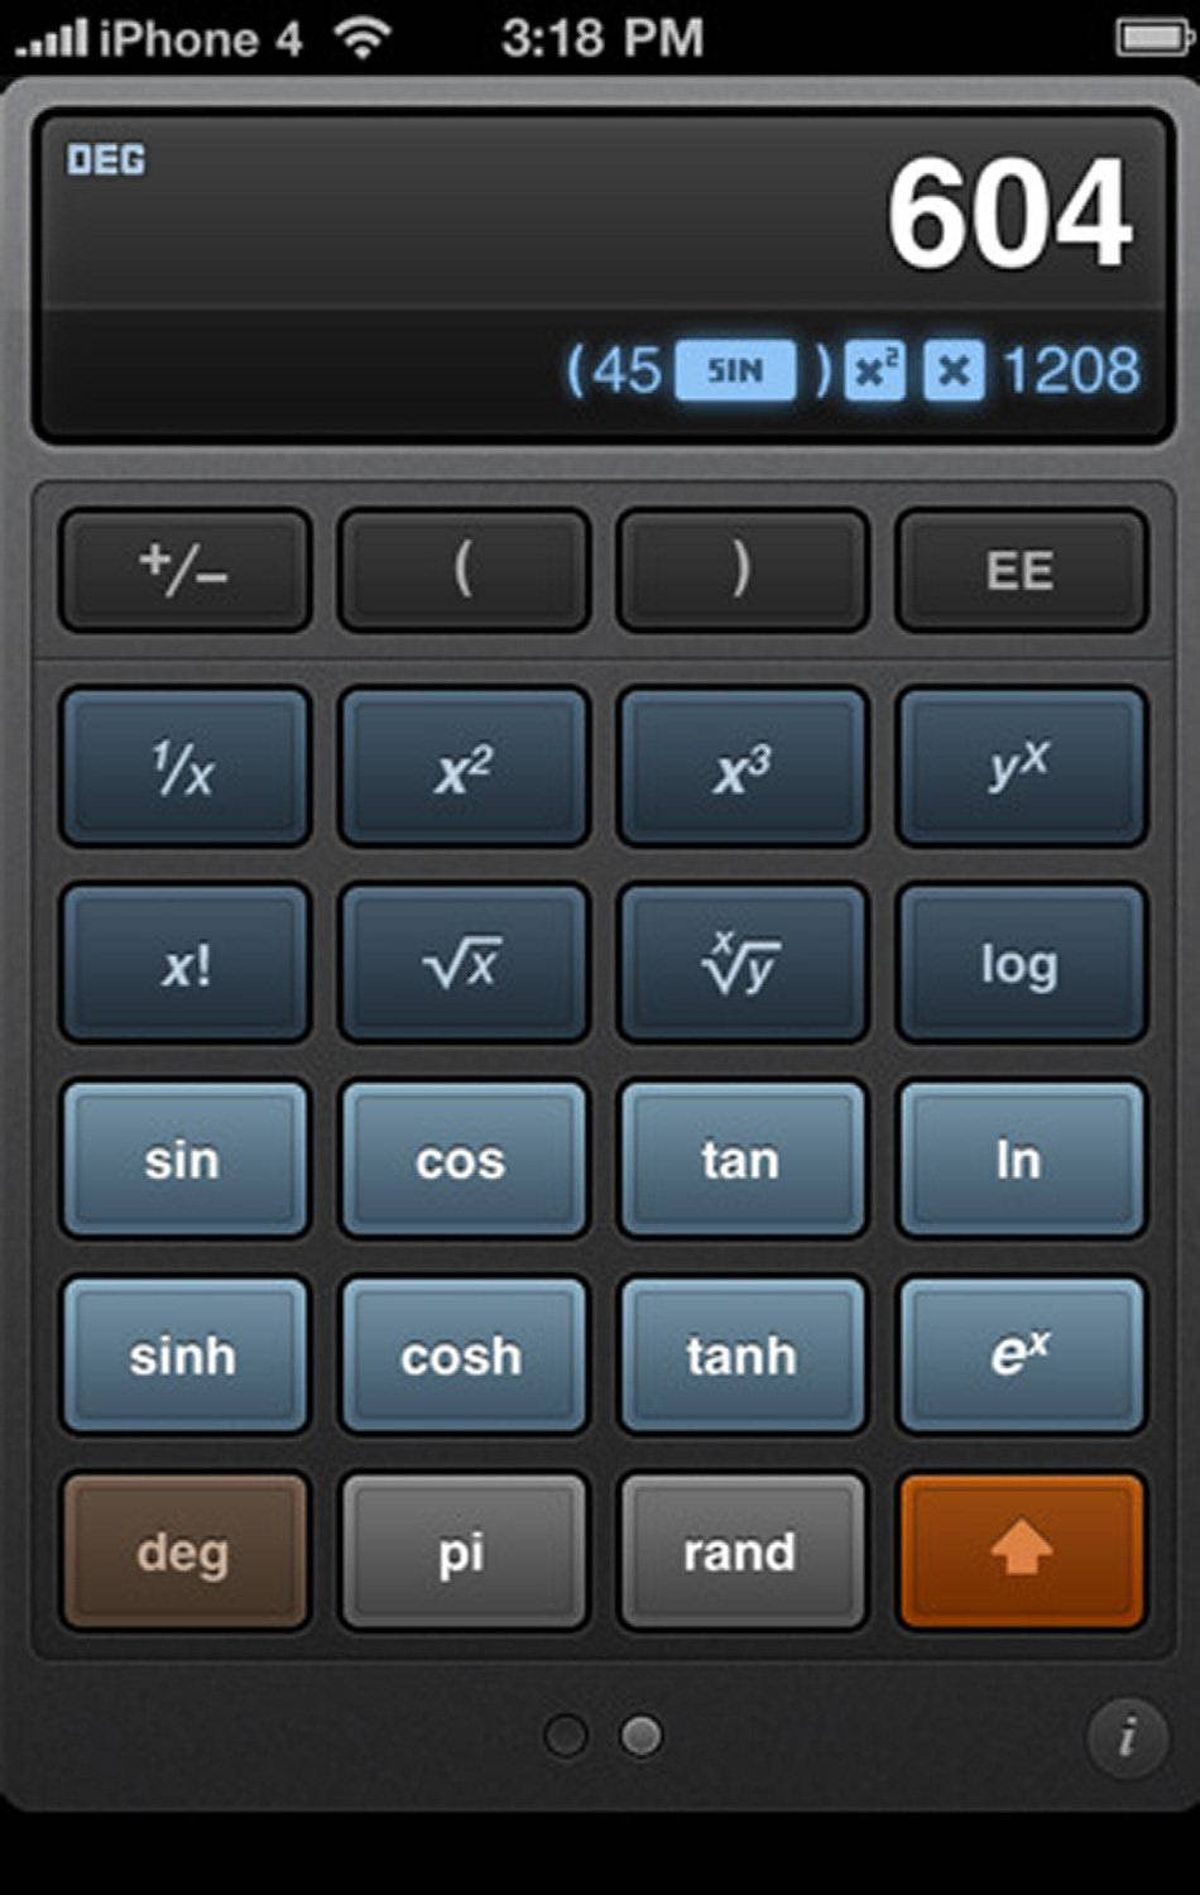 Calcbot The iPhone comes with a built-in calculator app. Why pay $1.99 to get another one? Calcbot adds two features worth paying for: a display that shows the process as well as the answer, and a History tape that remembers previous calculations. You can reuse your work from the History tape or send calculations via email, to have a more permanent record. ($1.99, tapbots.com)